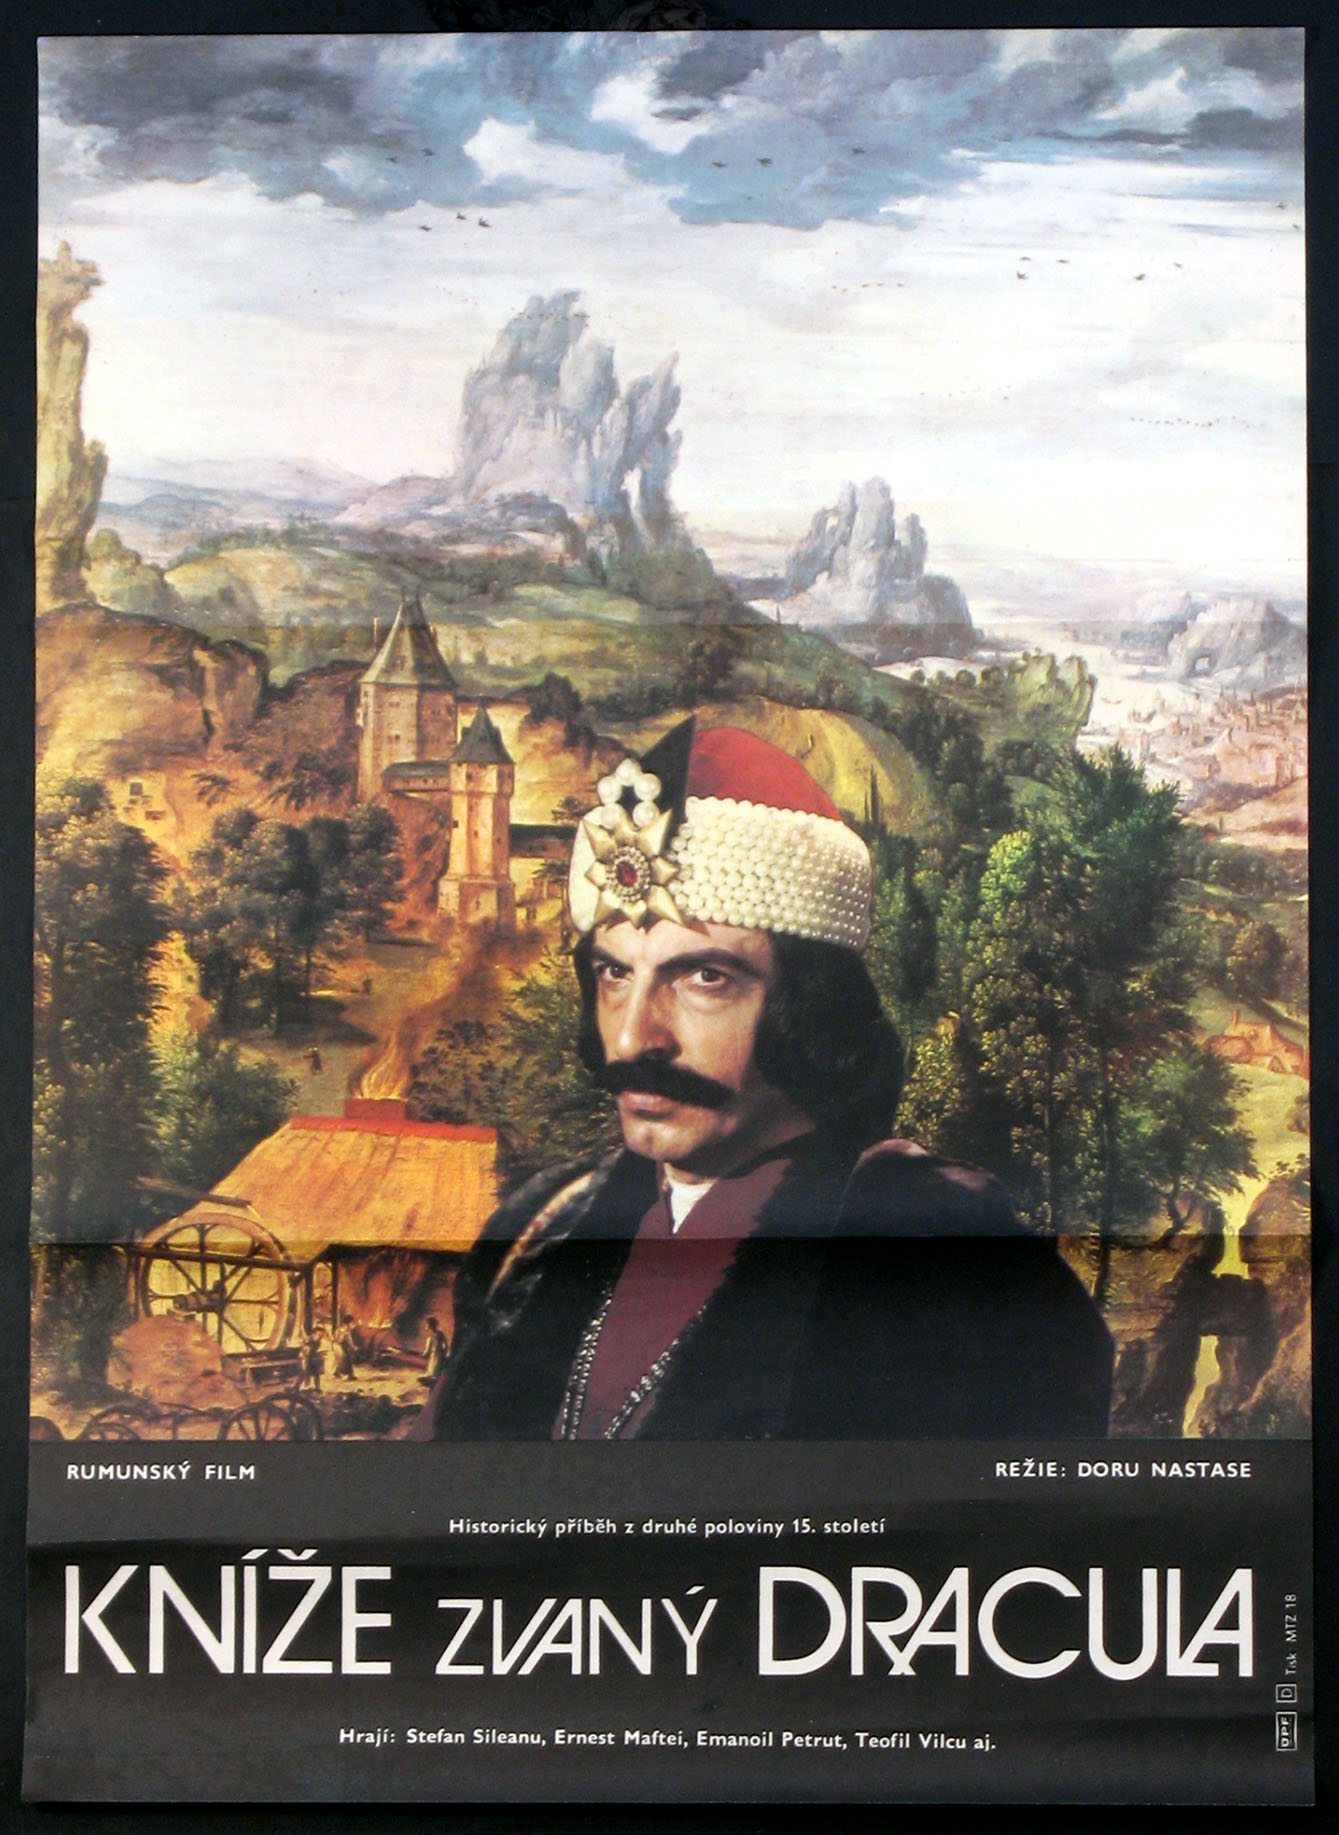 VLAD TEPES: THE TRUE STORY OF DRACULA @ FilmPosters.com